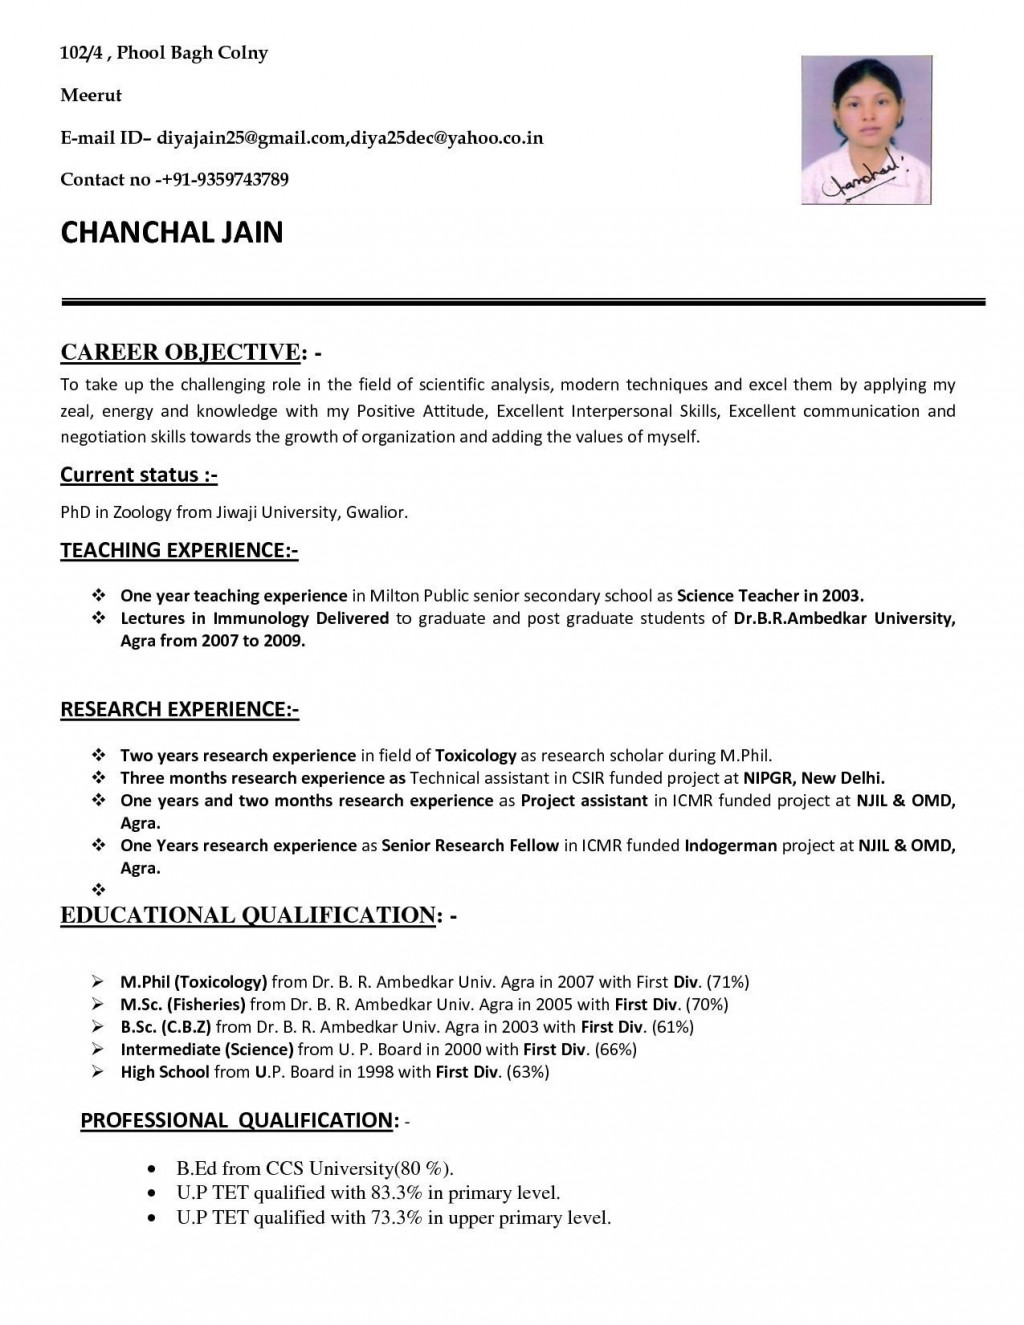 002 Magnificent Resume Example For Teaching Job  Jobs Format Sample Curriculum Vitae Profession In IndiaLarge